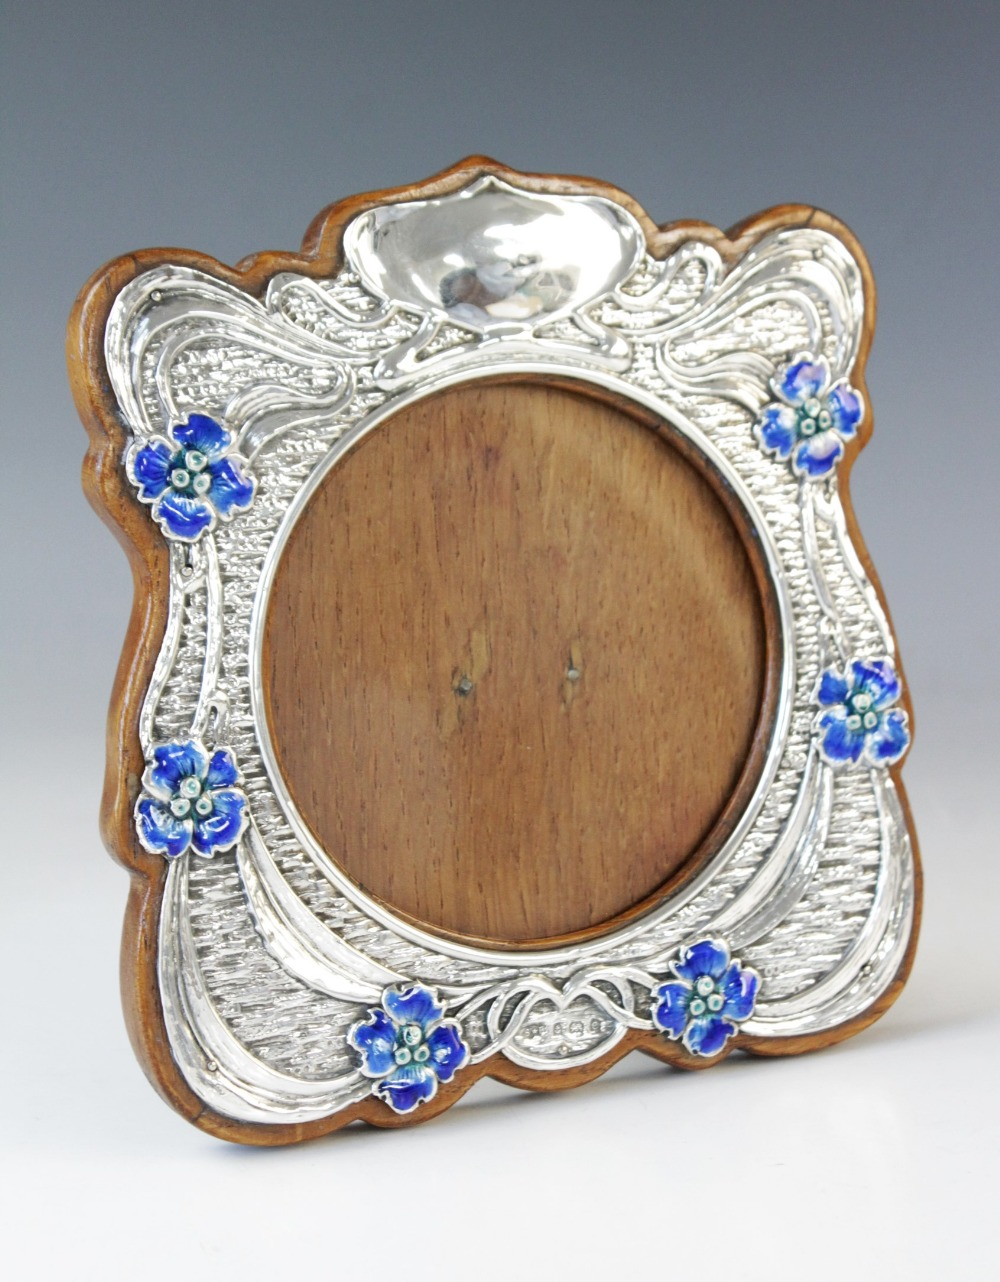 An Art Nouveau silver and enamel photograph frame, Synyer & Beddoes, Birmingham 1904, of shaped